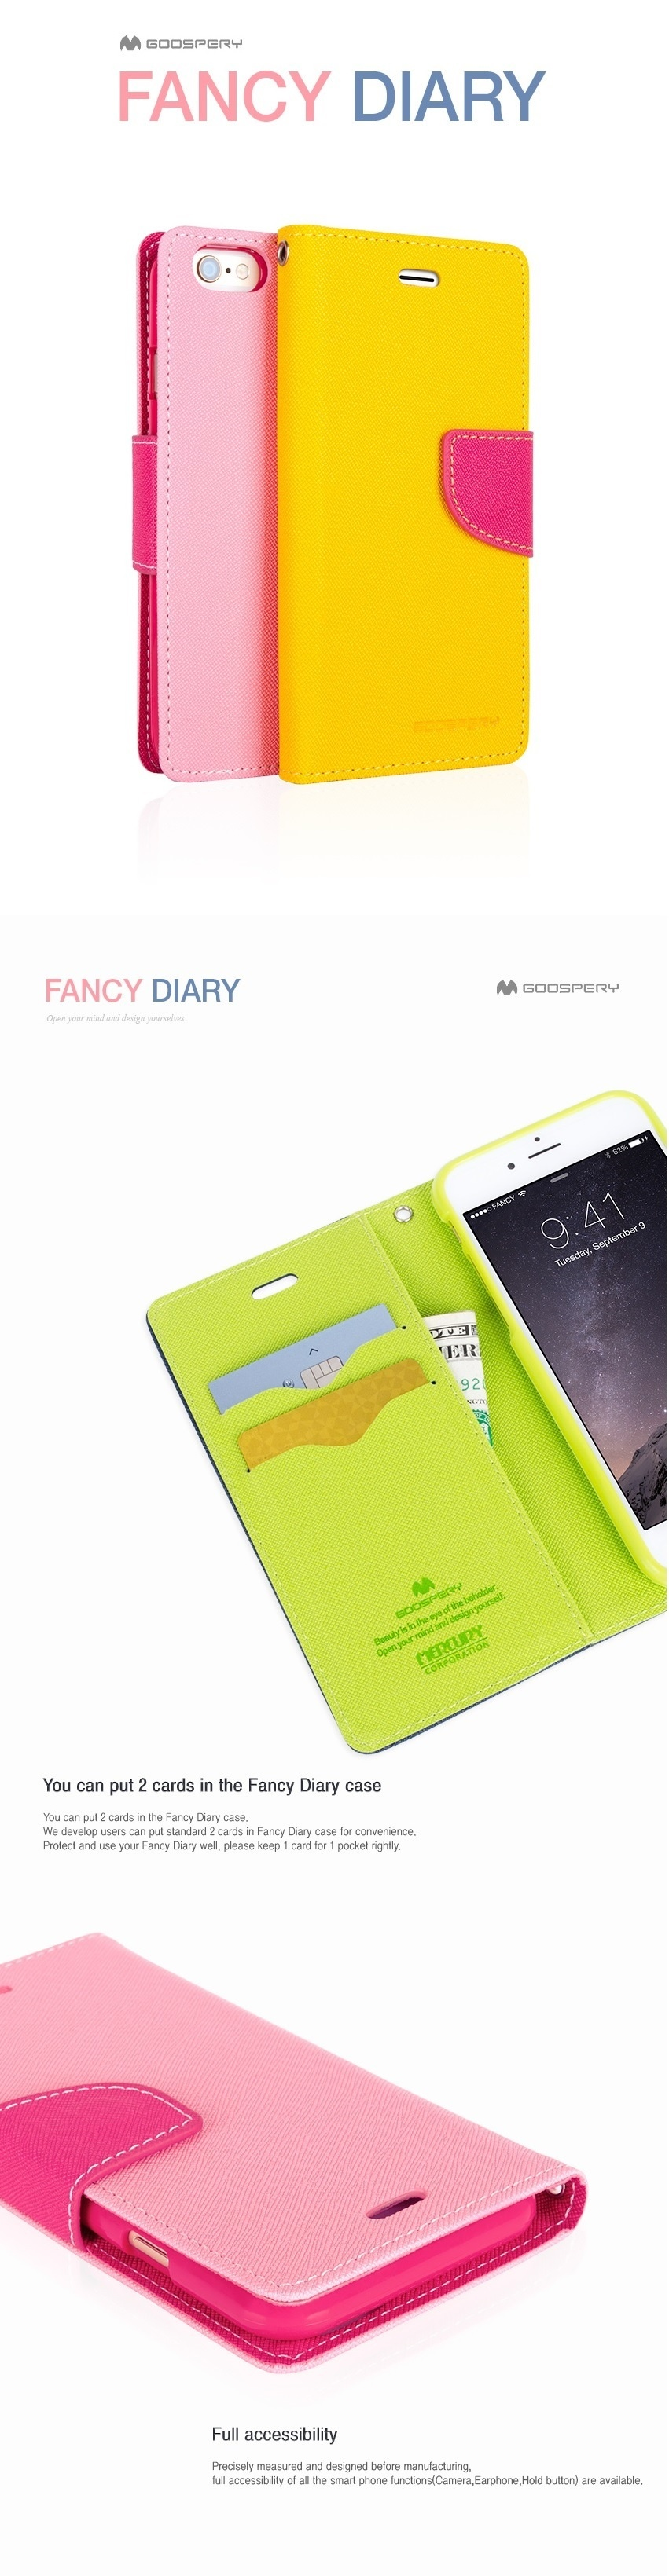 Goospery Iphone 7 8 Fancy Diary Case Authentic Lazada Singapore Plus Black Specifications Of